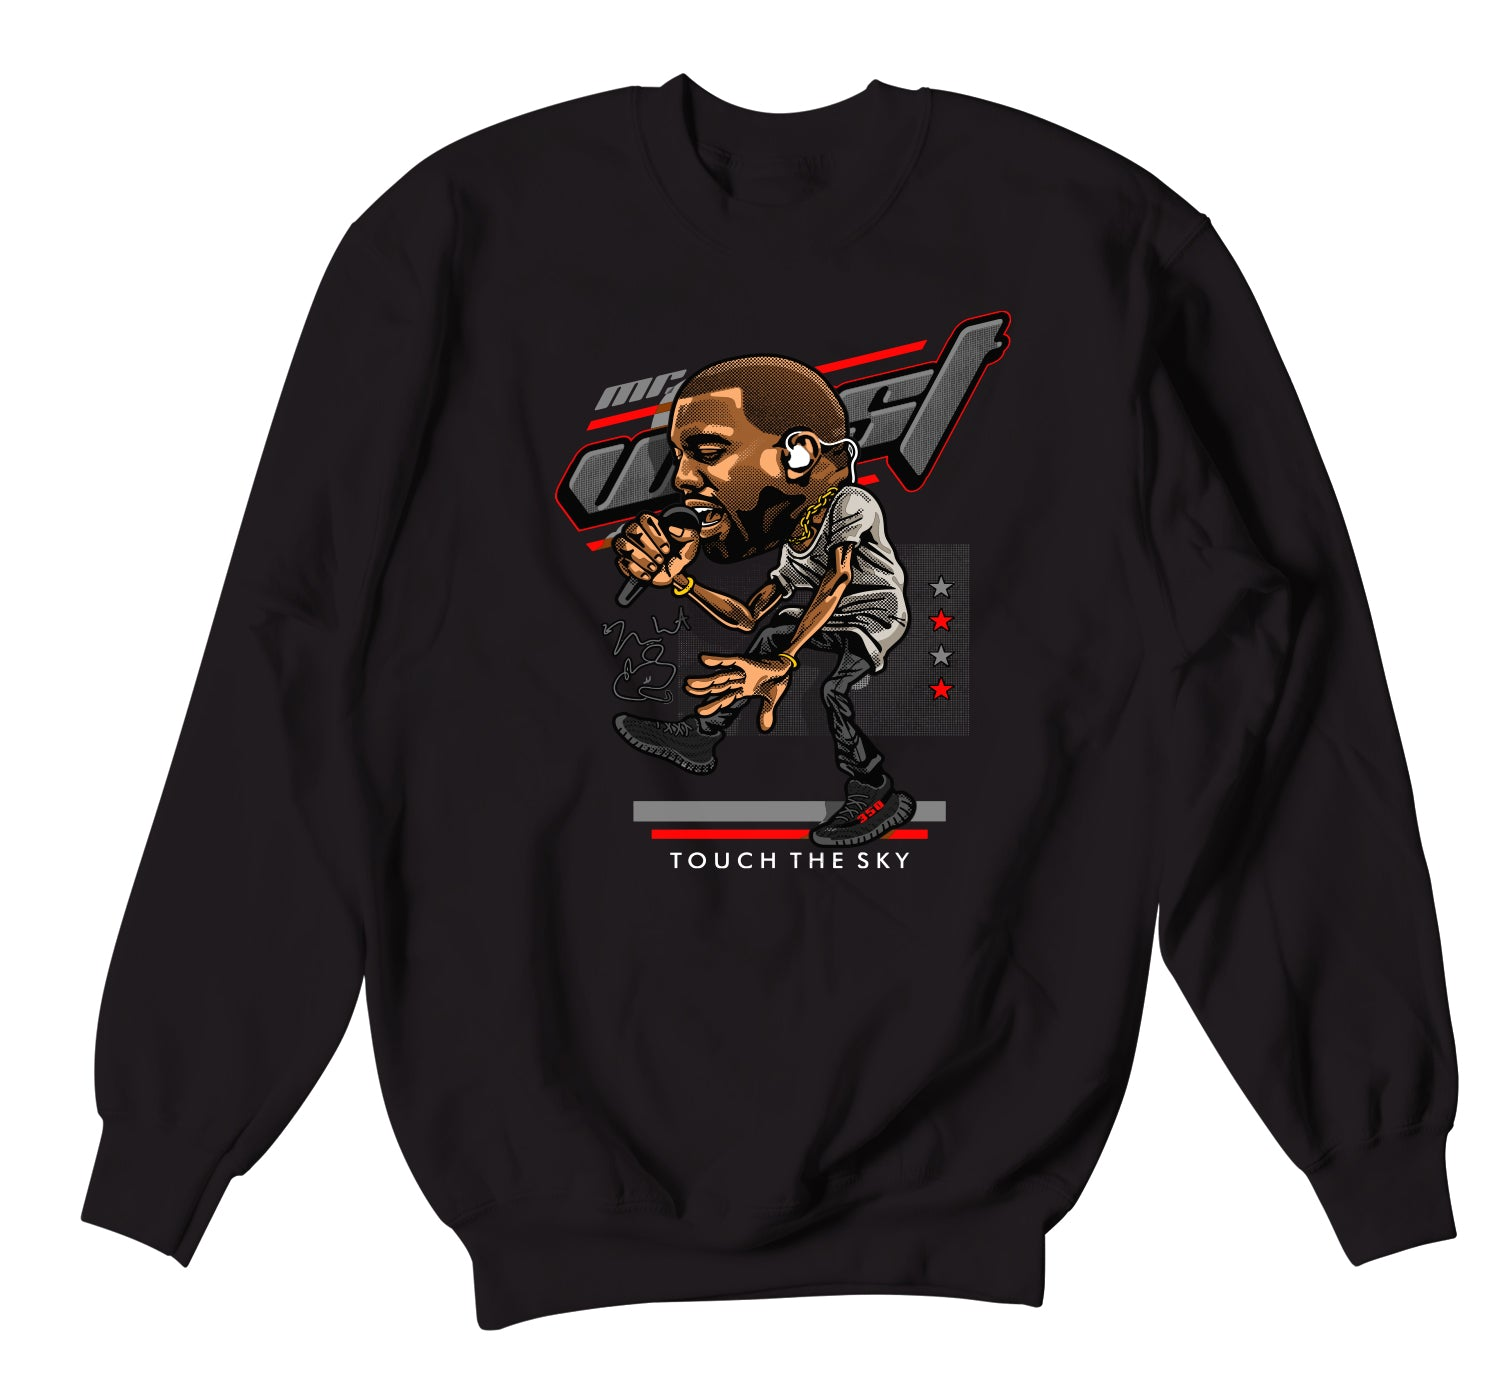 Yeezy 350 Bred Touch The Sky Sweater